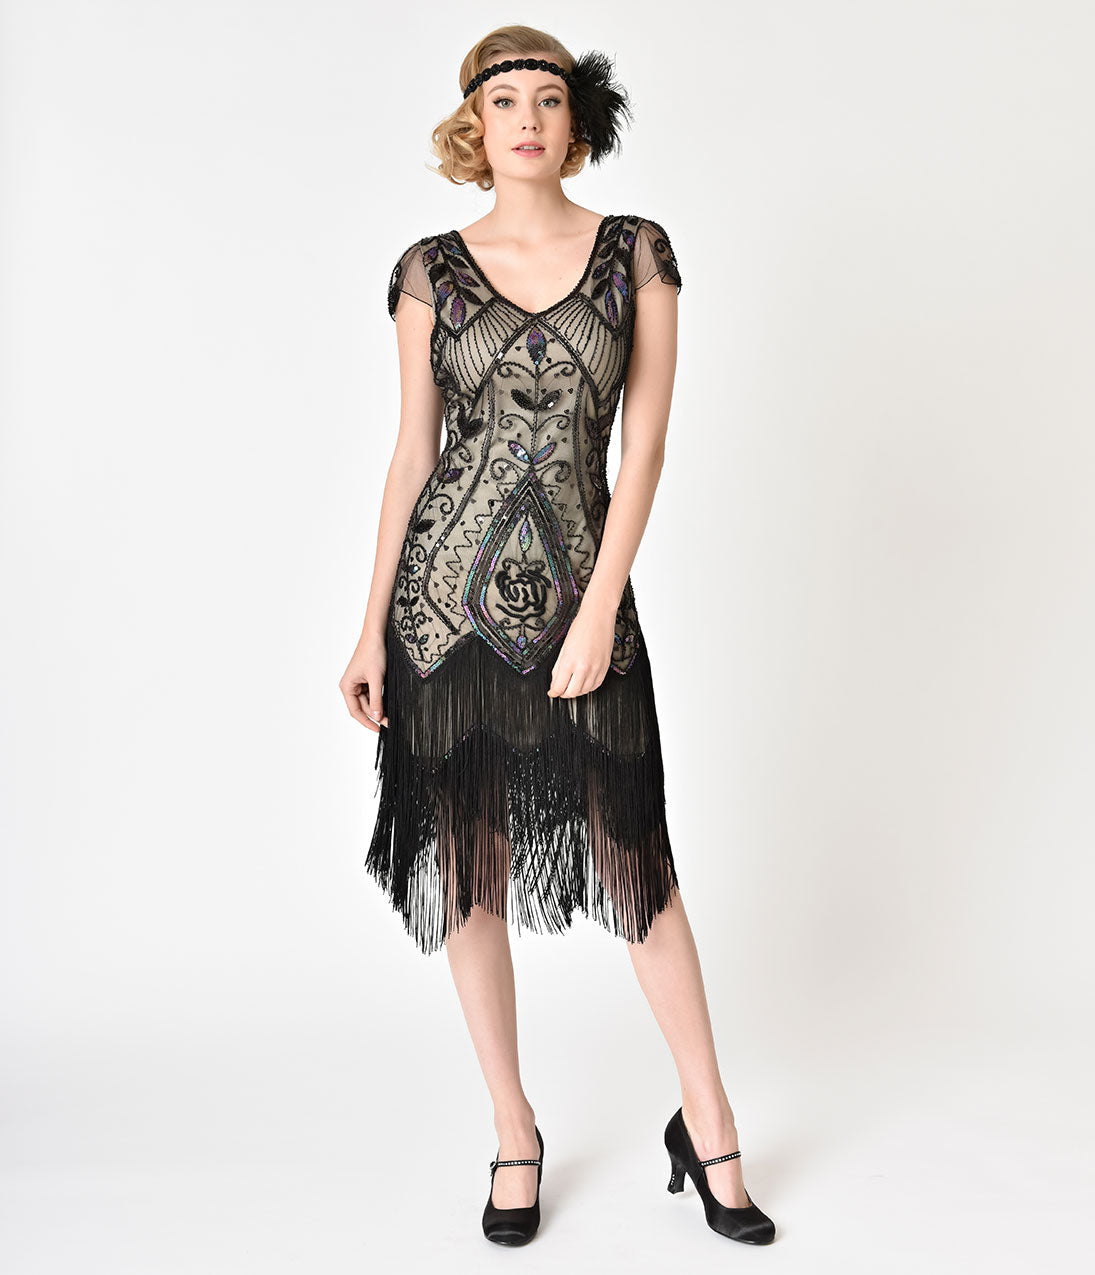 Downton Abbey Inspired Dresses Unique Vintage 1920S Black Rose  Champagne Noele Fringe Flapper Dress $98.00 AT vintagedancer.com